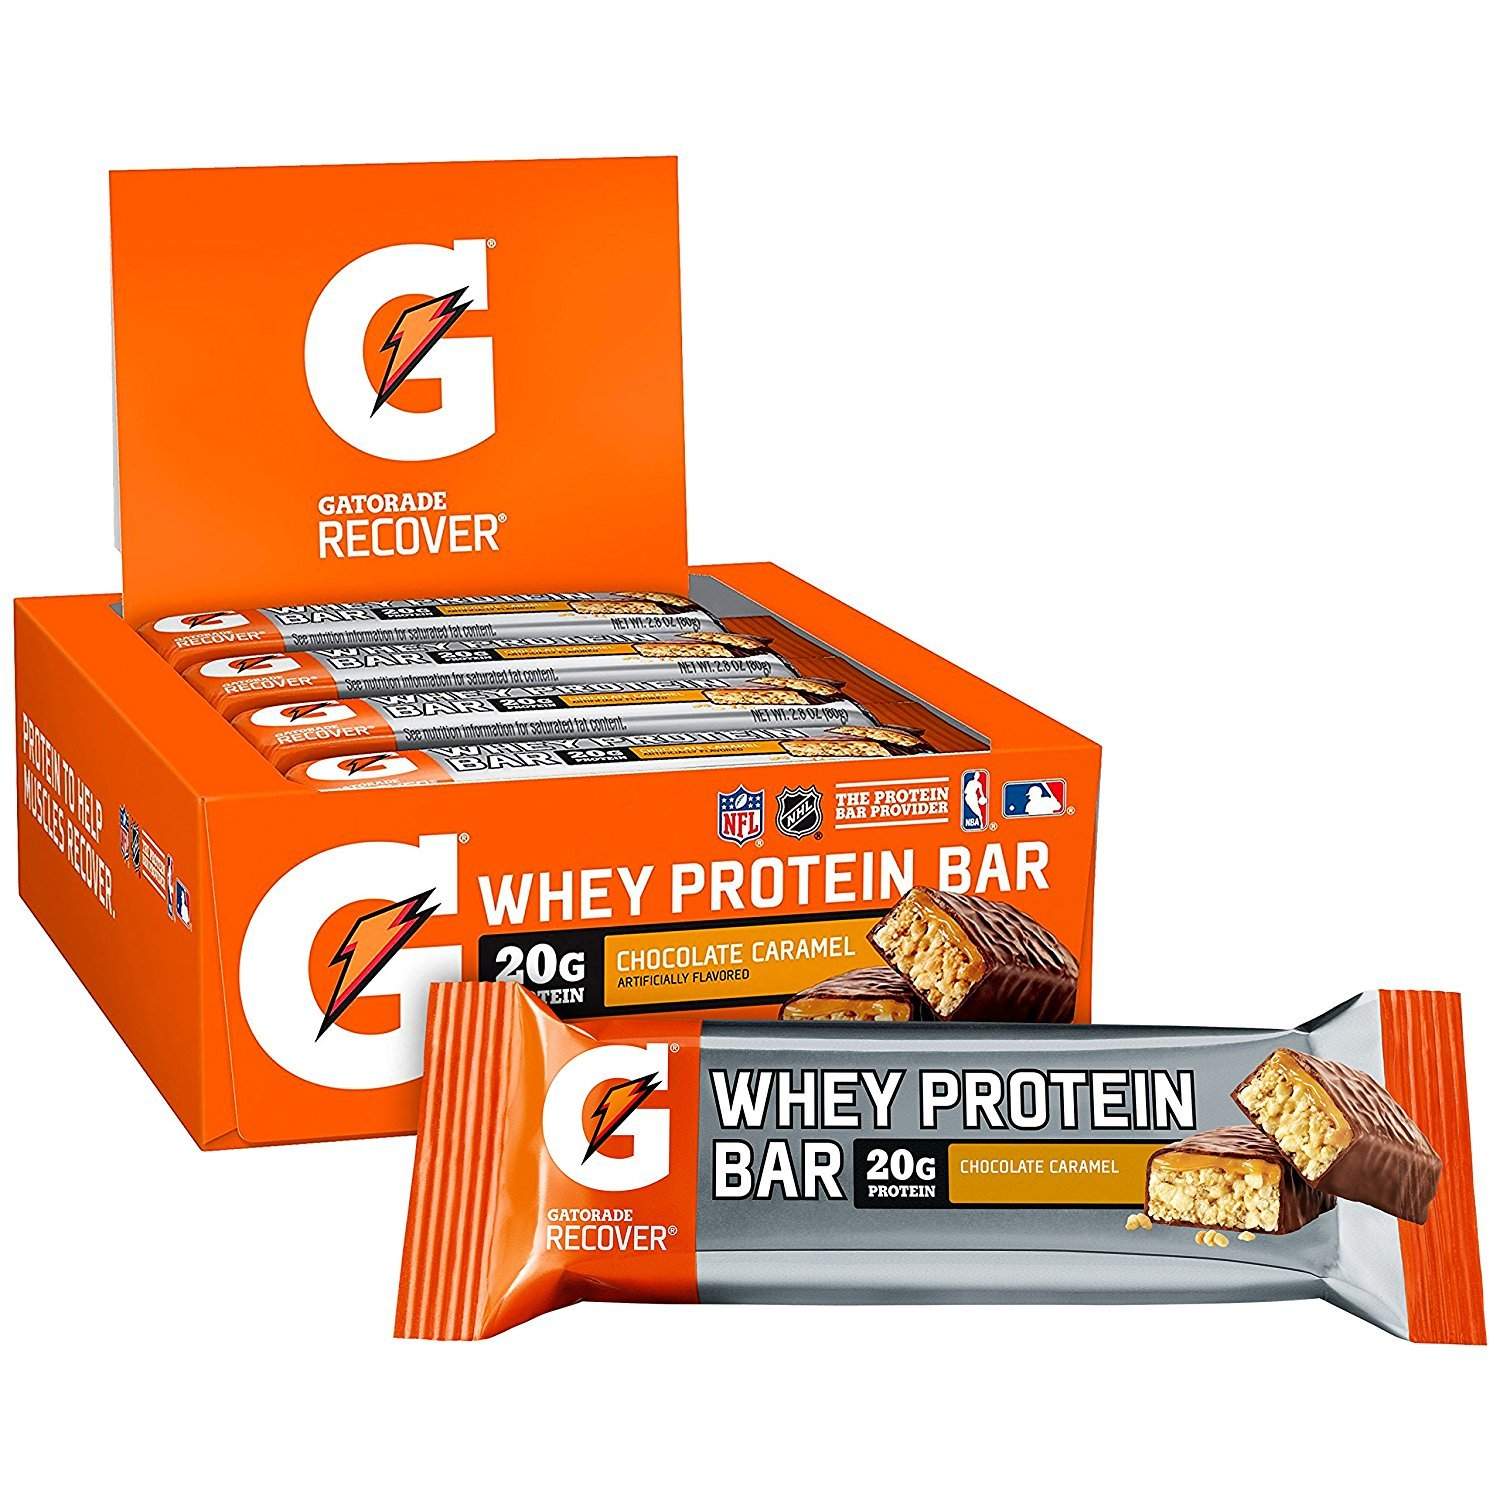 Gatorade Whey Protein Recover Bars, Chocolate Caramel, 2.8 ounce bars (12 Count) by Gatorade